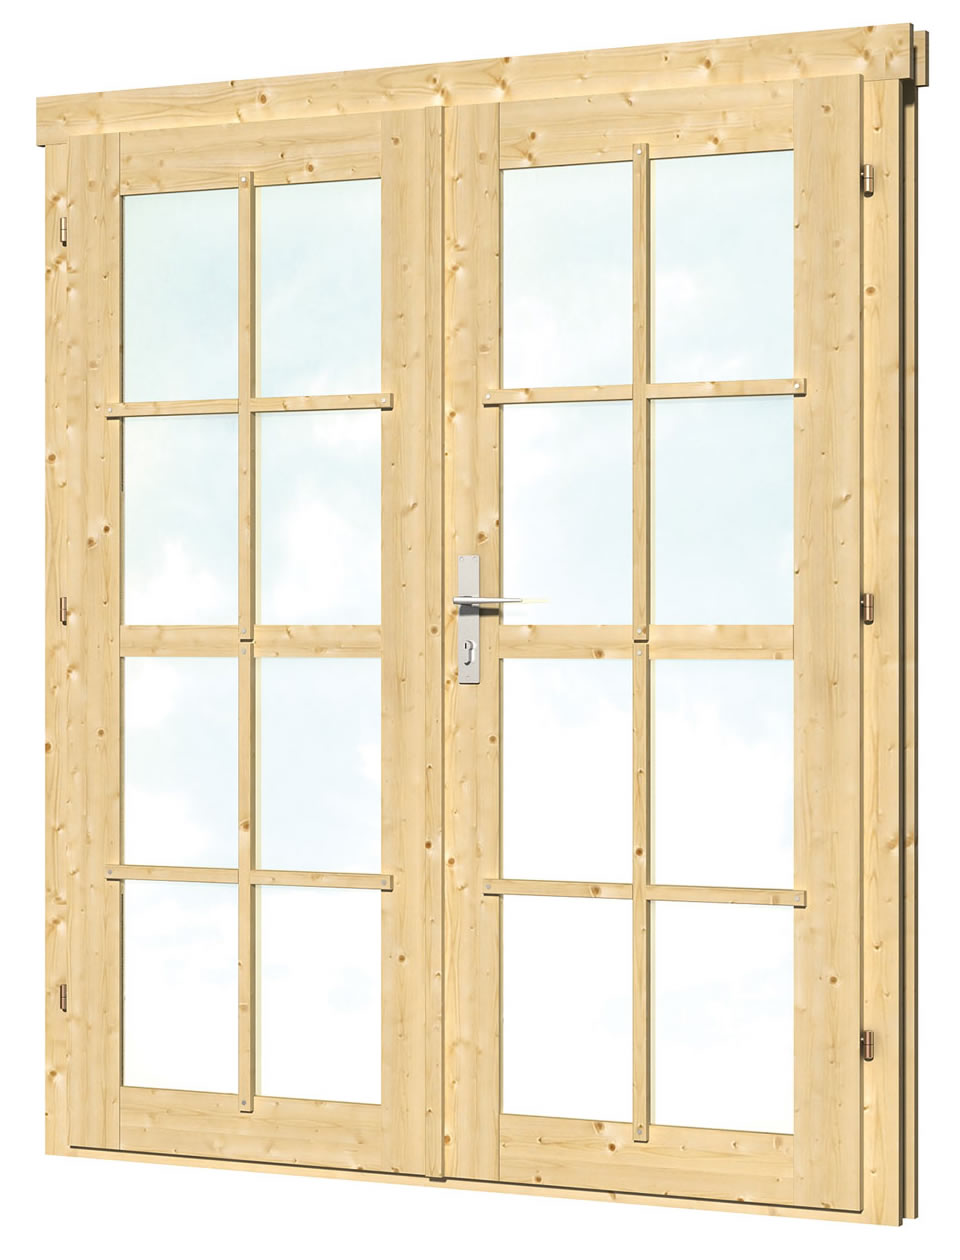 40.2031 Double Door - DL8 - W159 x H188cm